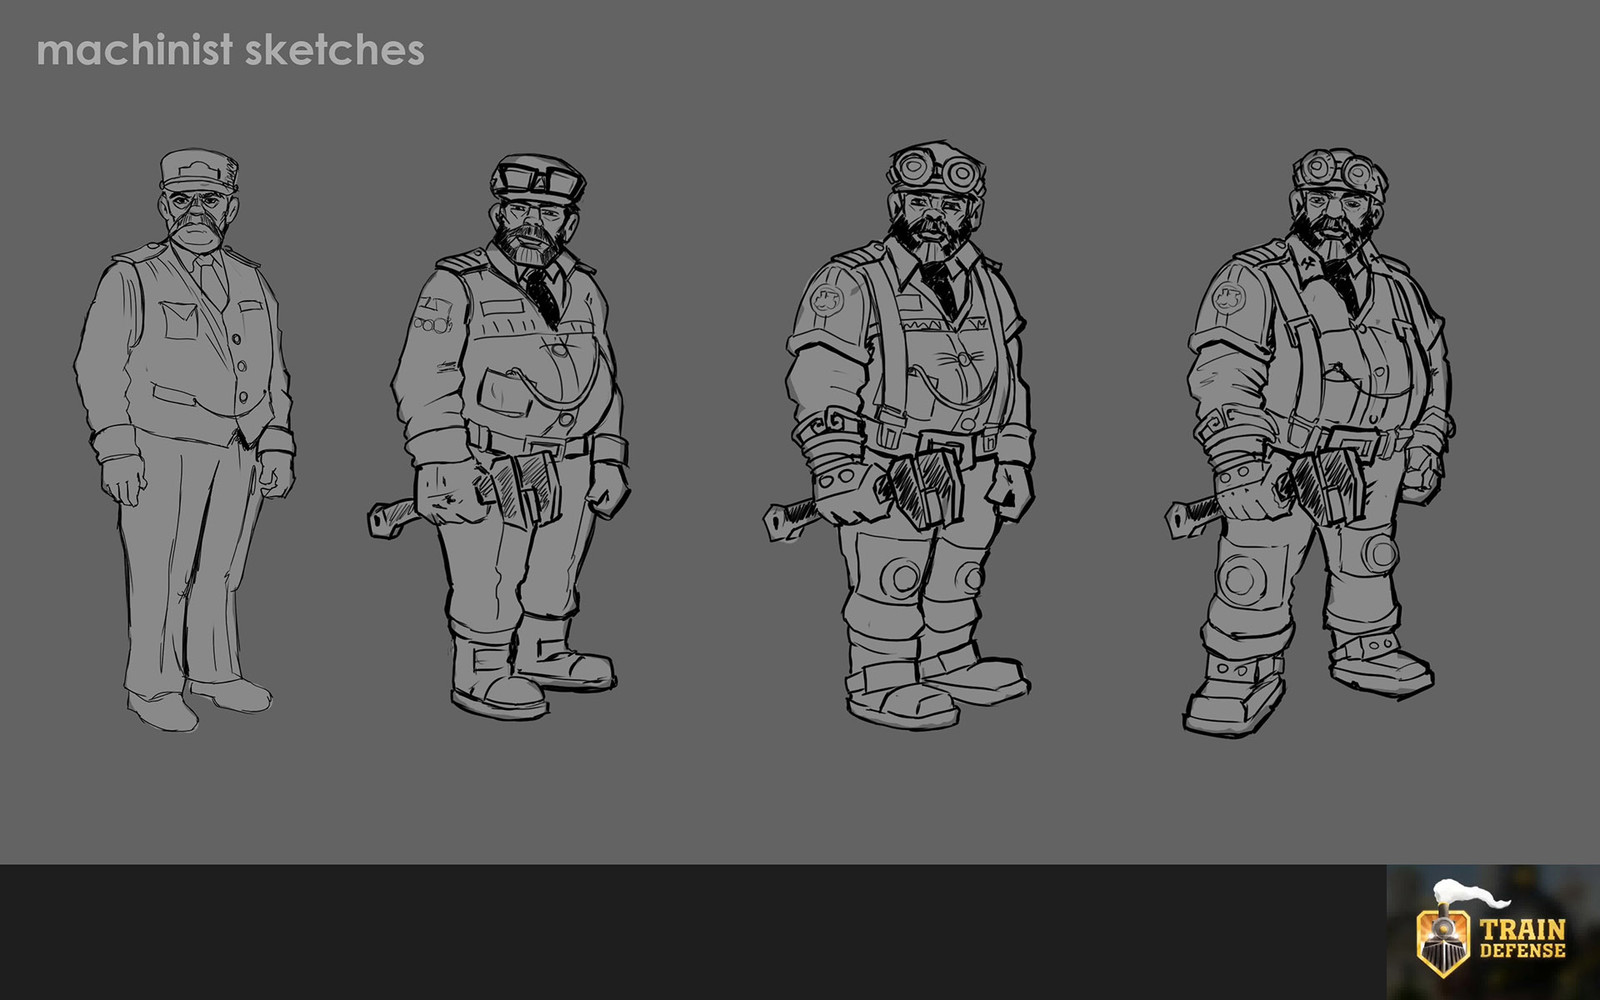 Machinist (sketches)